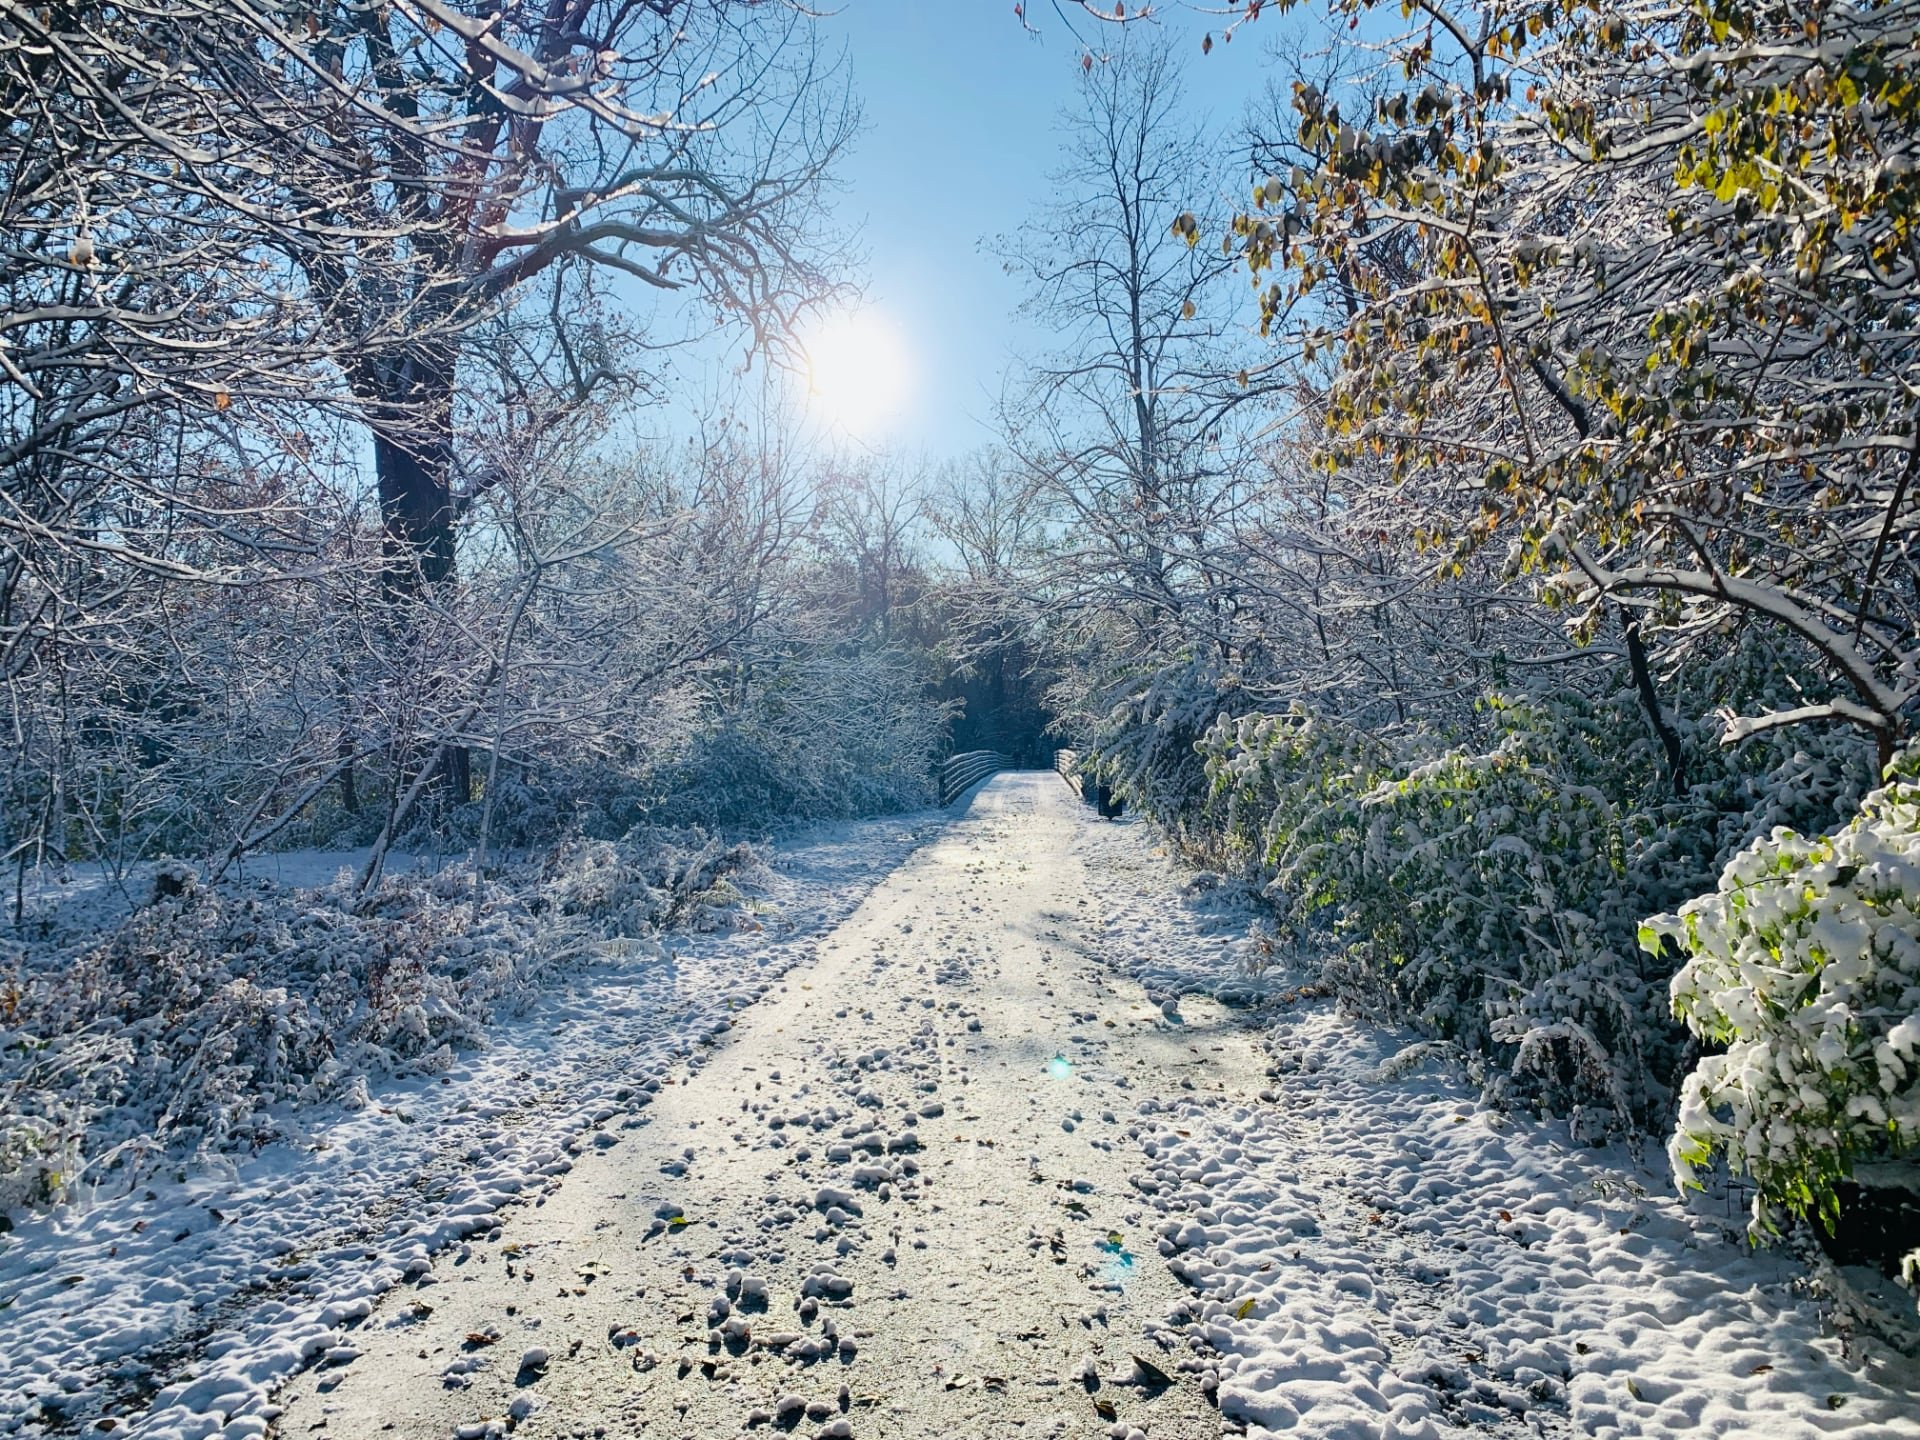 A frozen section of the bike trail with the sun overlooking